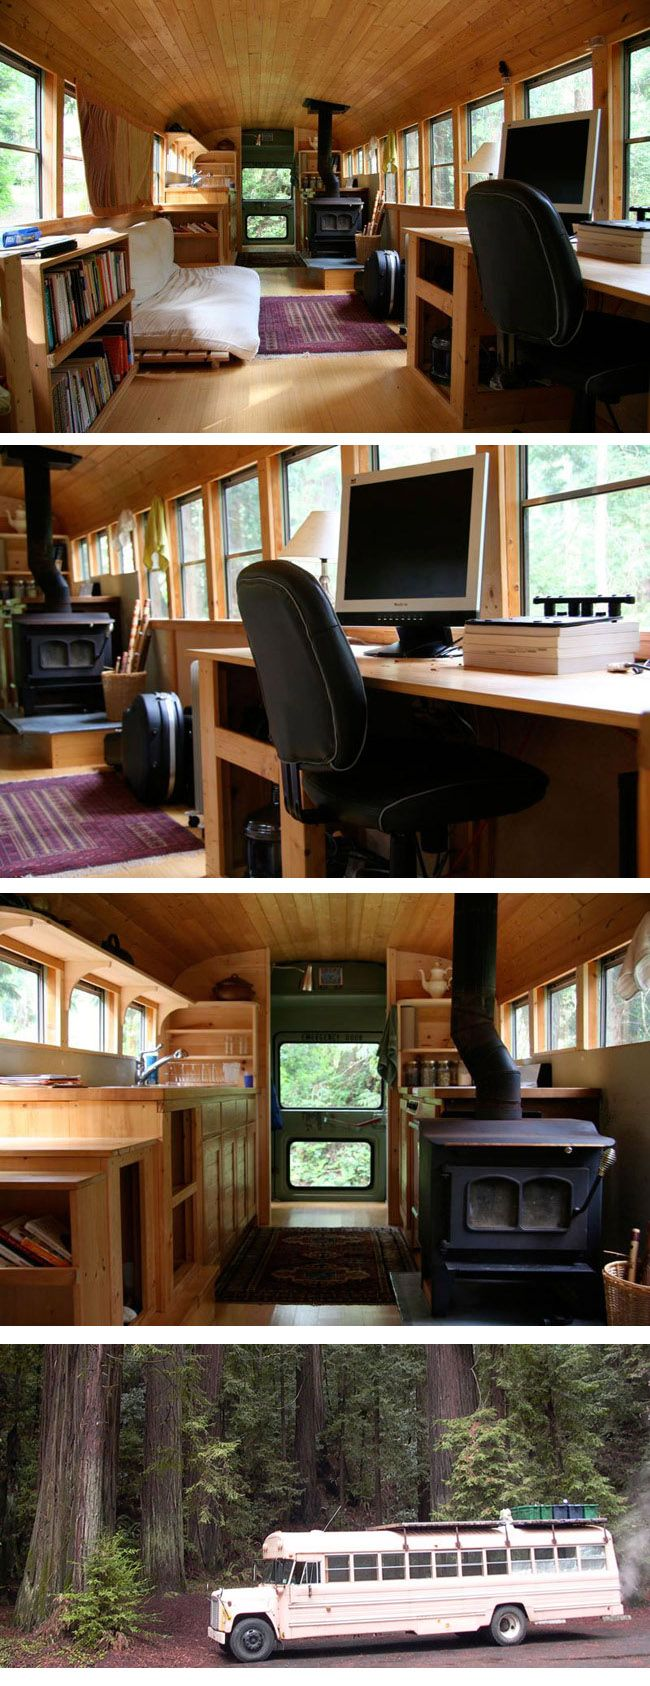 Old School Bus Turned Into A Tiny House ( http://tinyhouselistings.com/old-school-bus-turned-into-a-tiny-house/ )